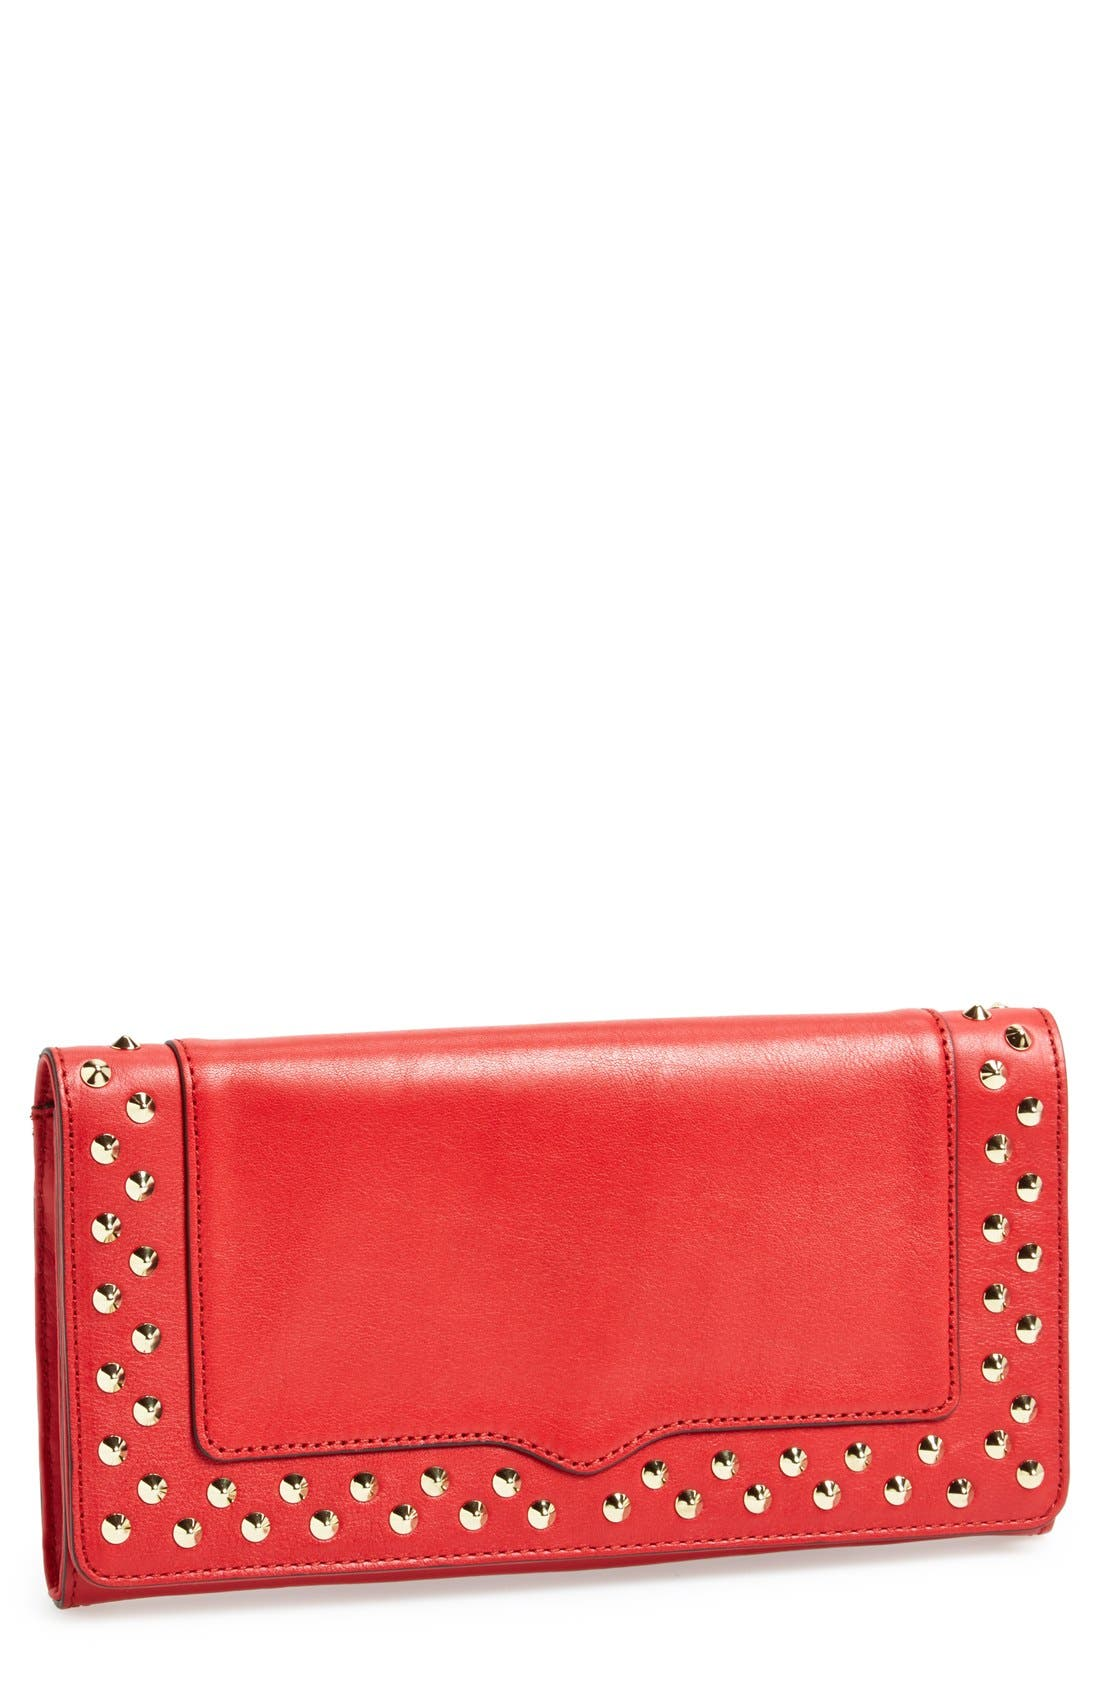 REBECCA MINKOFF 'Amorous' Clutch with Studs, Main, color, 600